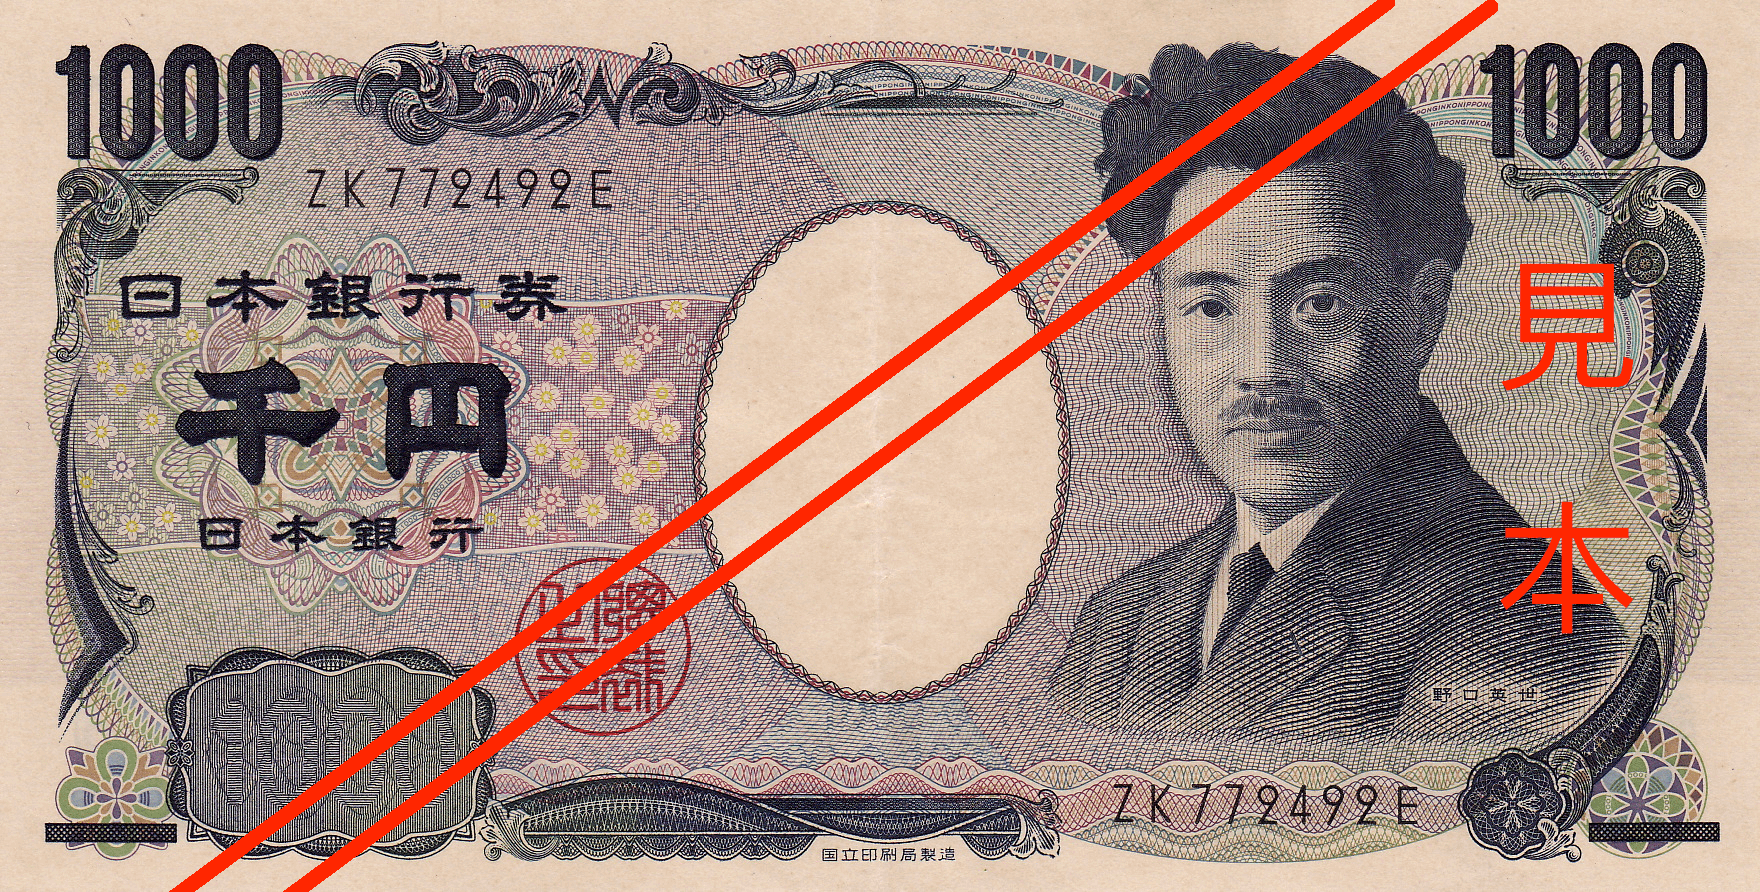 Actual size image of  Banknotes of the Japanese yen .